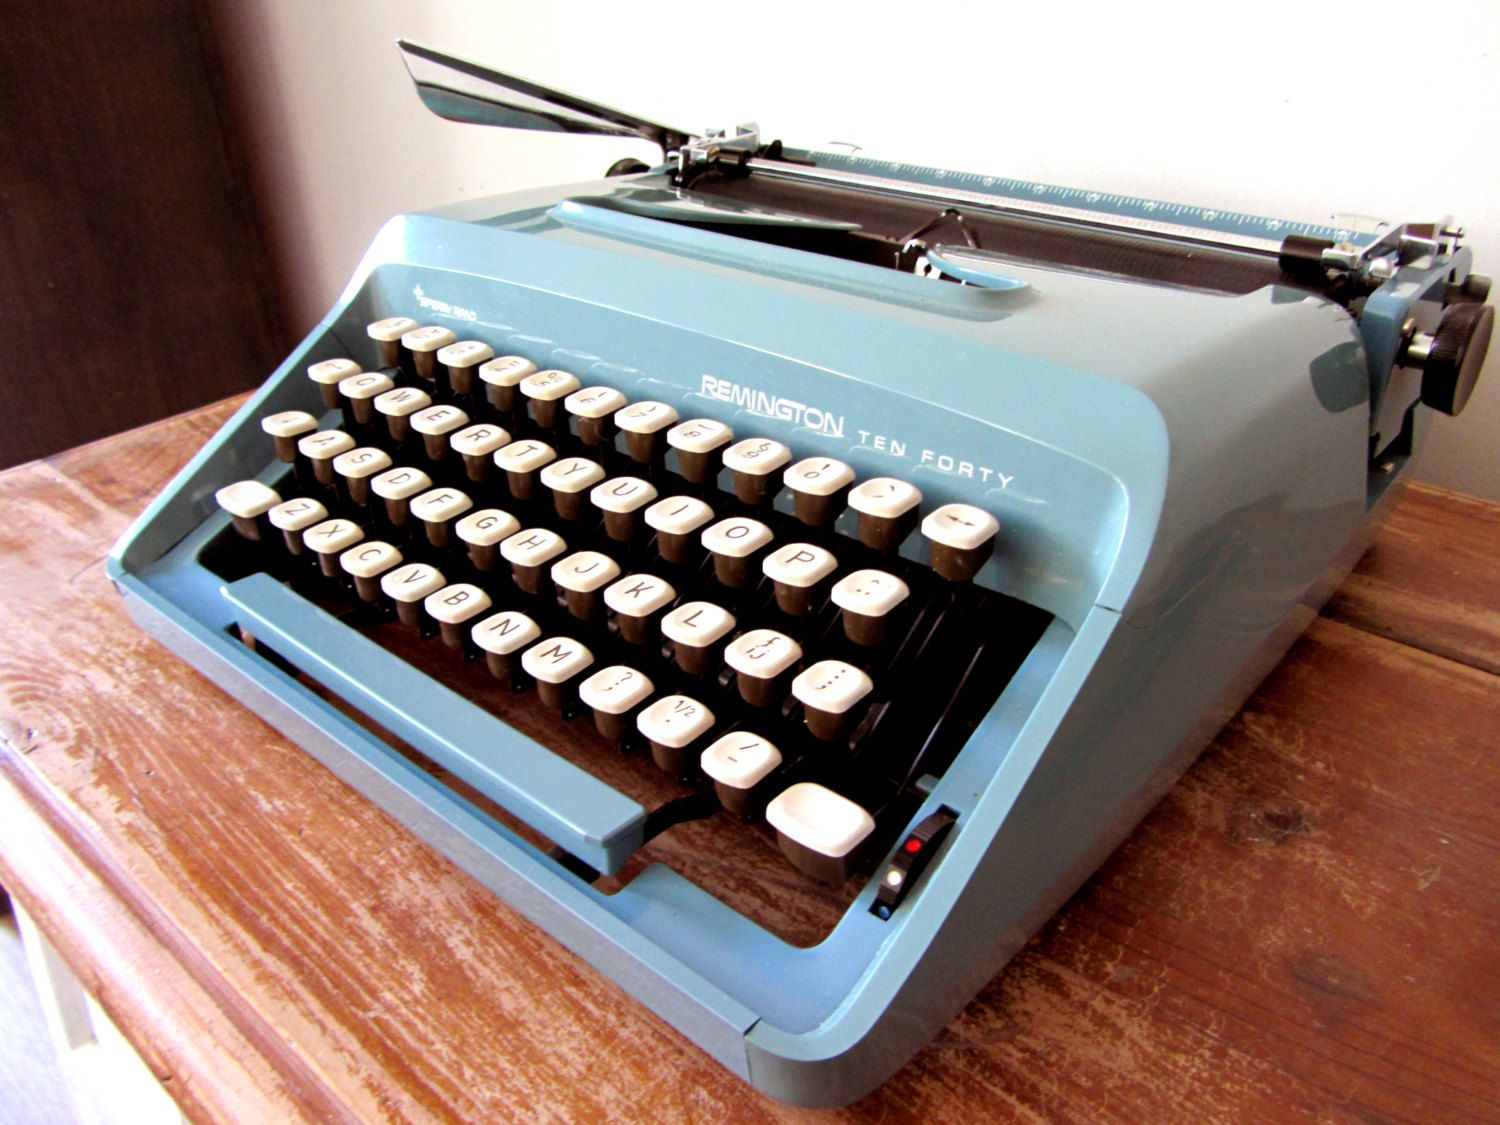 I have for sale or trade a 1960's Remington Ten Forty portable in aqua  blue. Works great, only needs a new ribbon! For a great nastalgic gift, ...